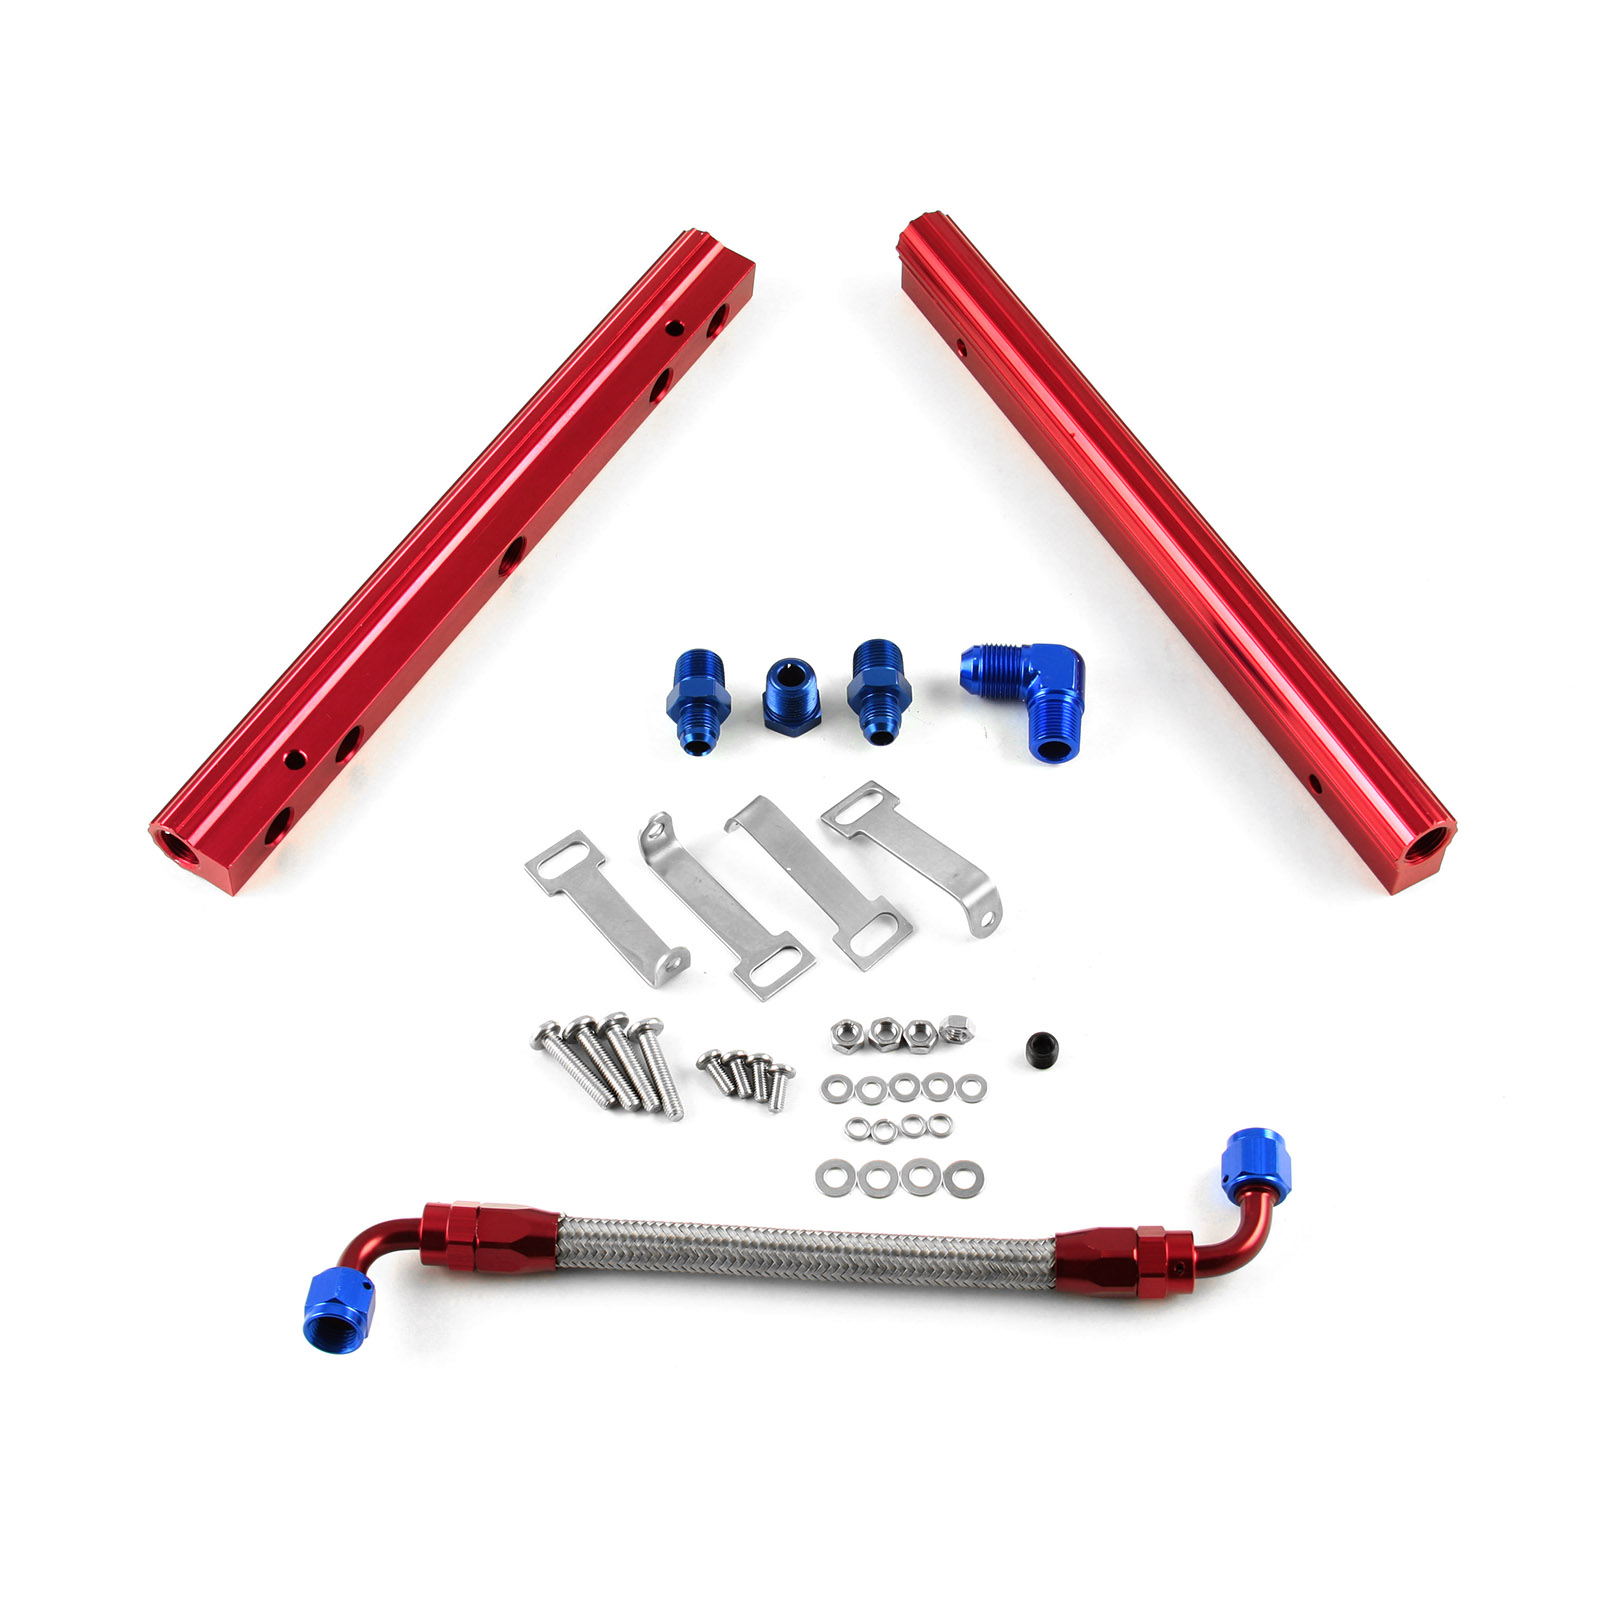 Chevy BBC 454 Billet Aluminum Fuel Injector Rail Kit